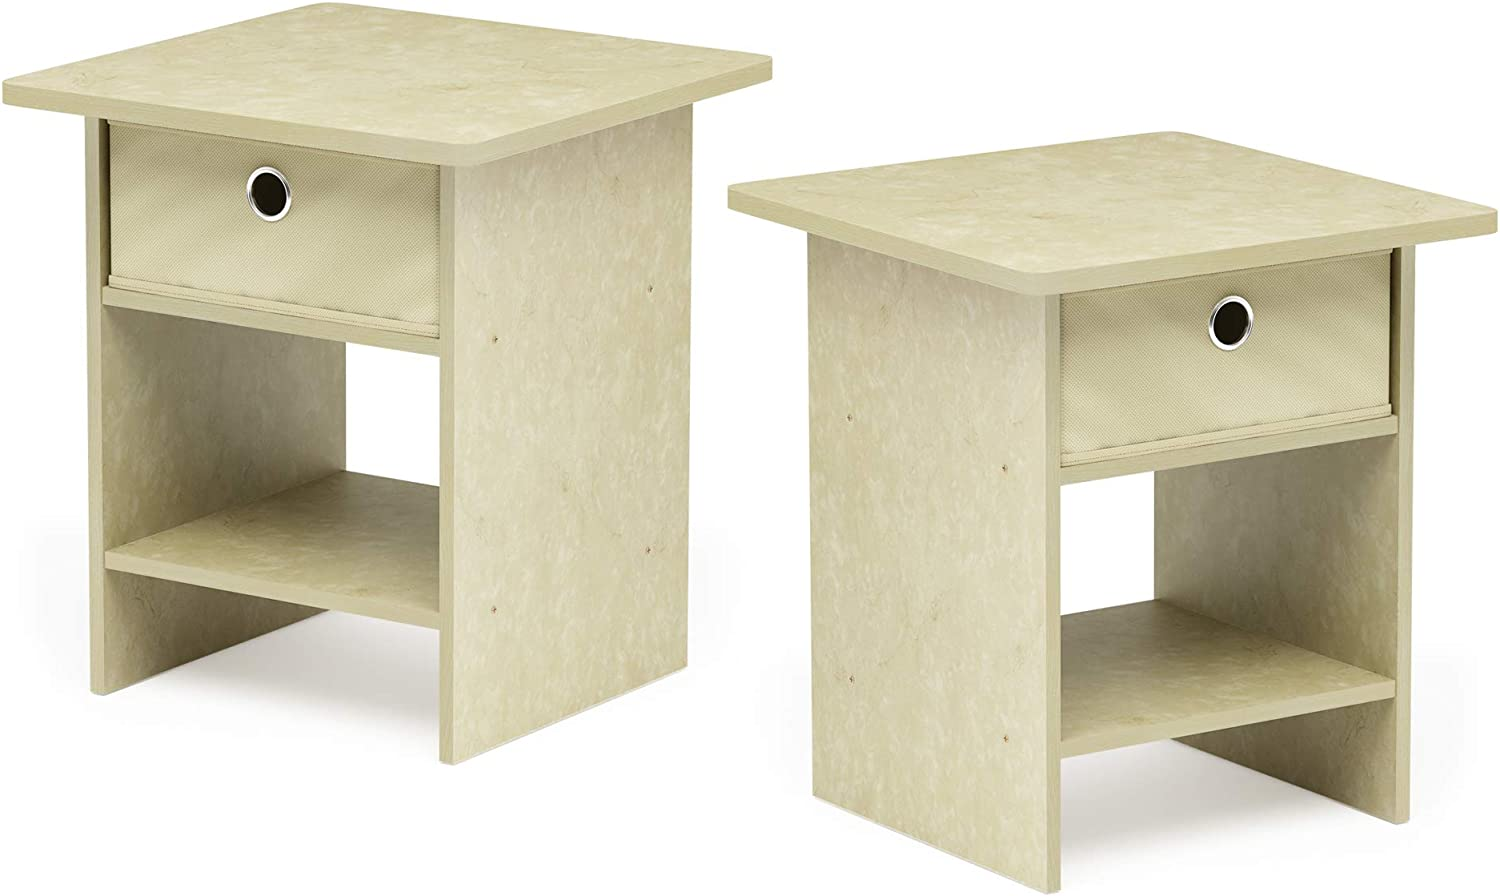 FURINNO 2-10004CRM Bin Drawer Storage 2-Pack End Table Nightstand, Cream Faux Marble Ivory